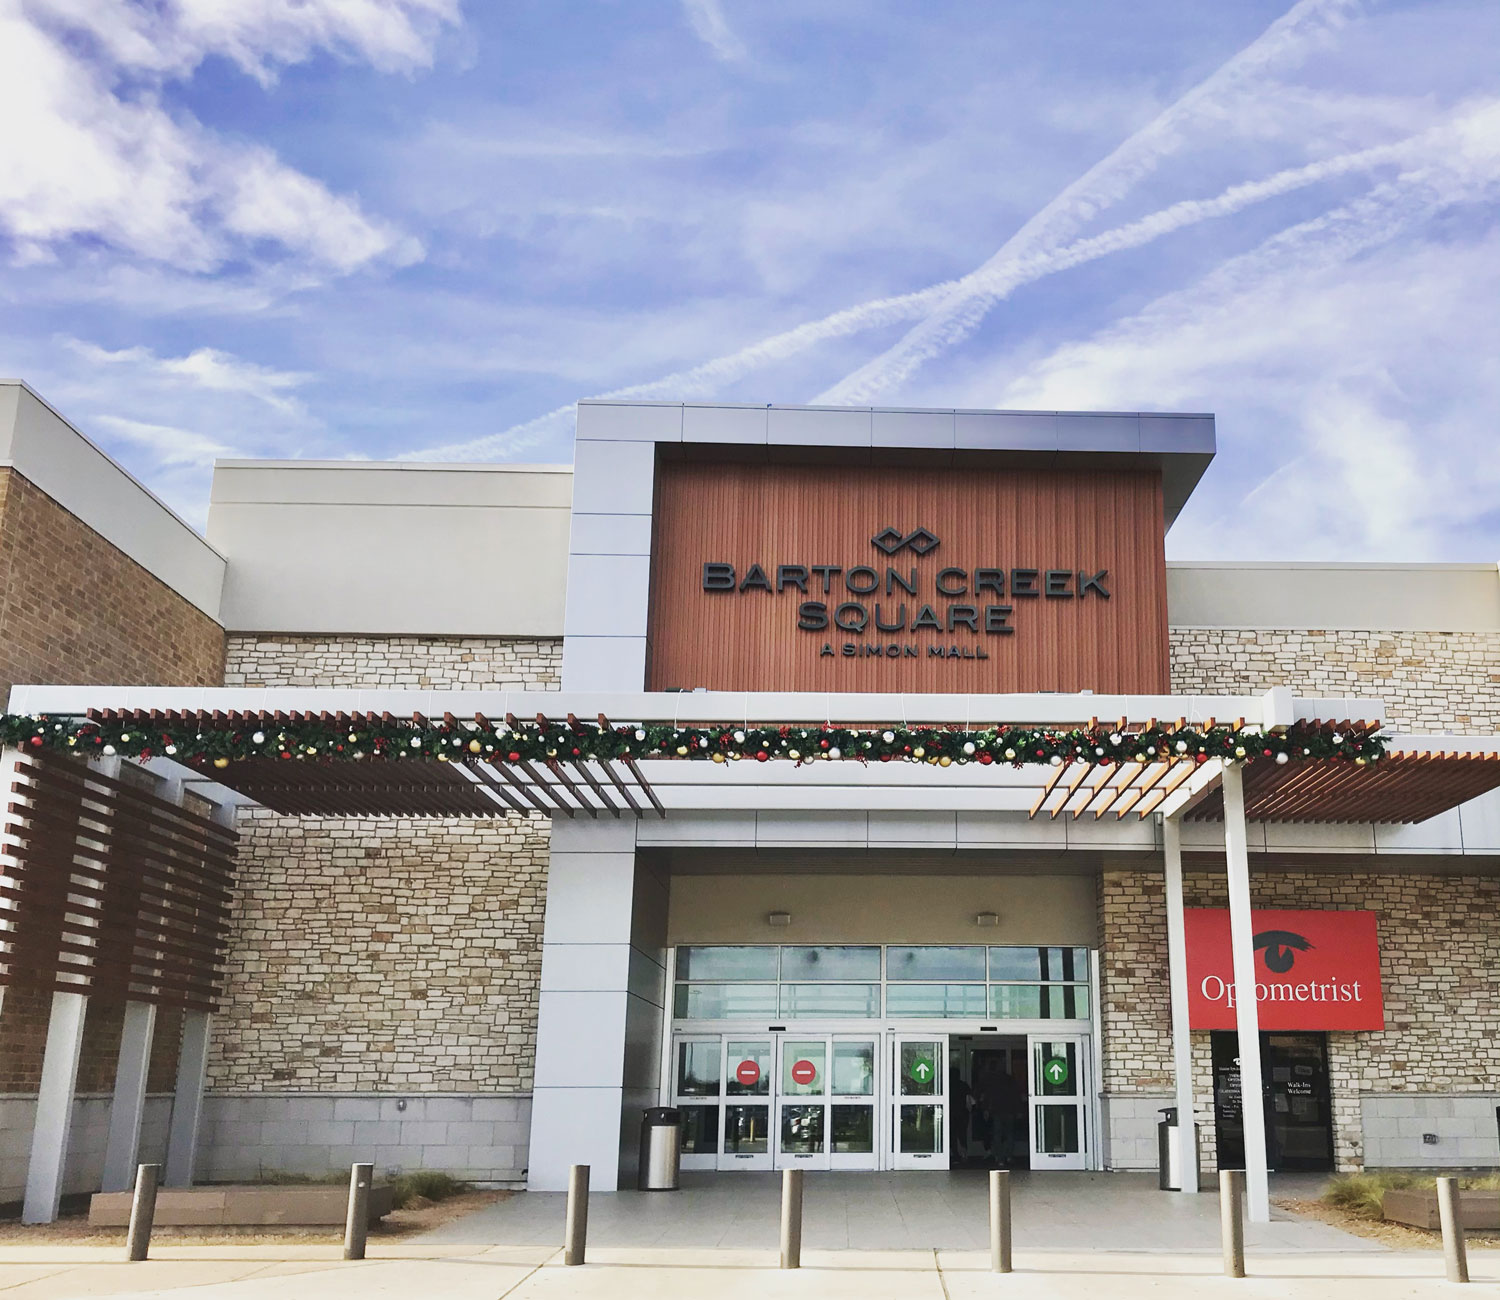 Sears at Barton Creek Square is located southeast of Austin on the northeast corner of Mopac loop 1 and Capital of Texas Highway loop Call us to find out our regular and holiday hours at so you can plan a great day of shopping with family and friends.